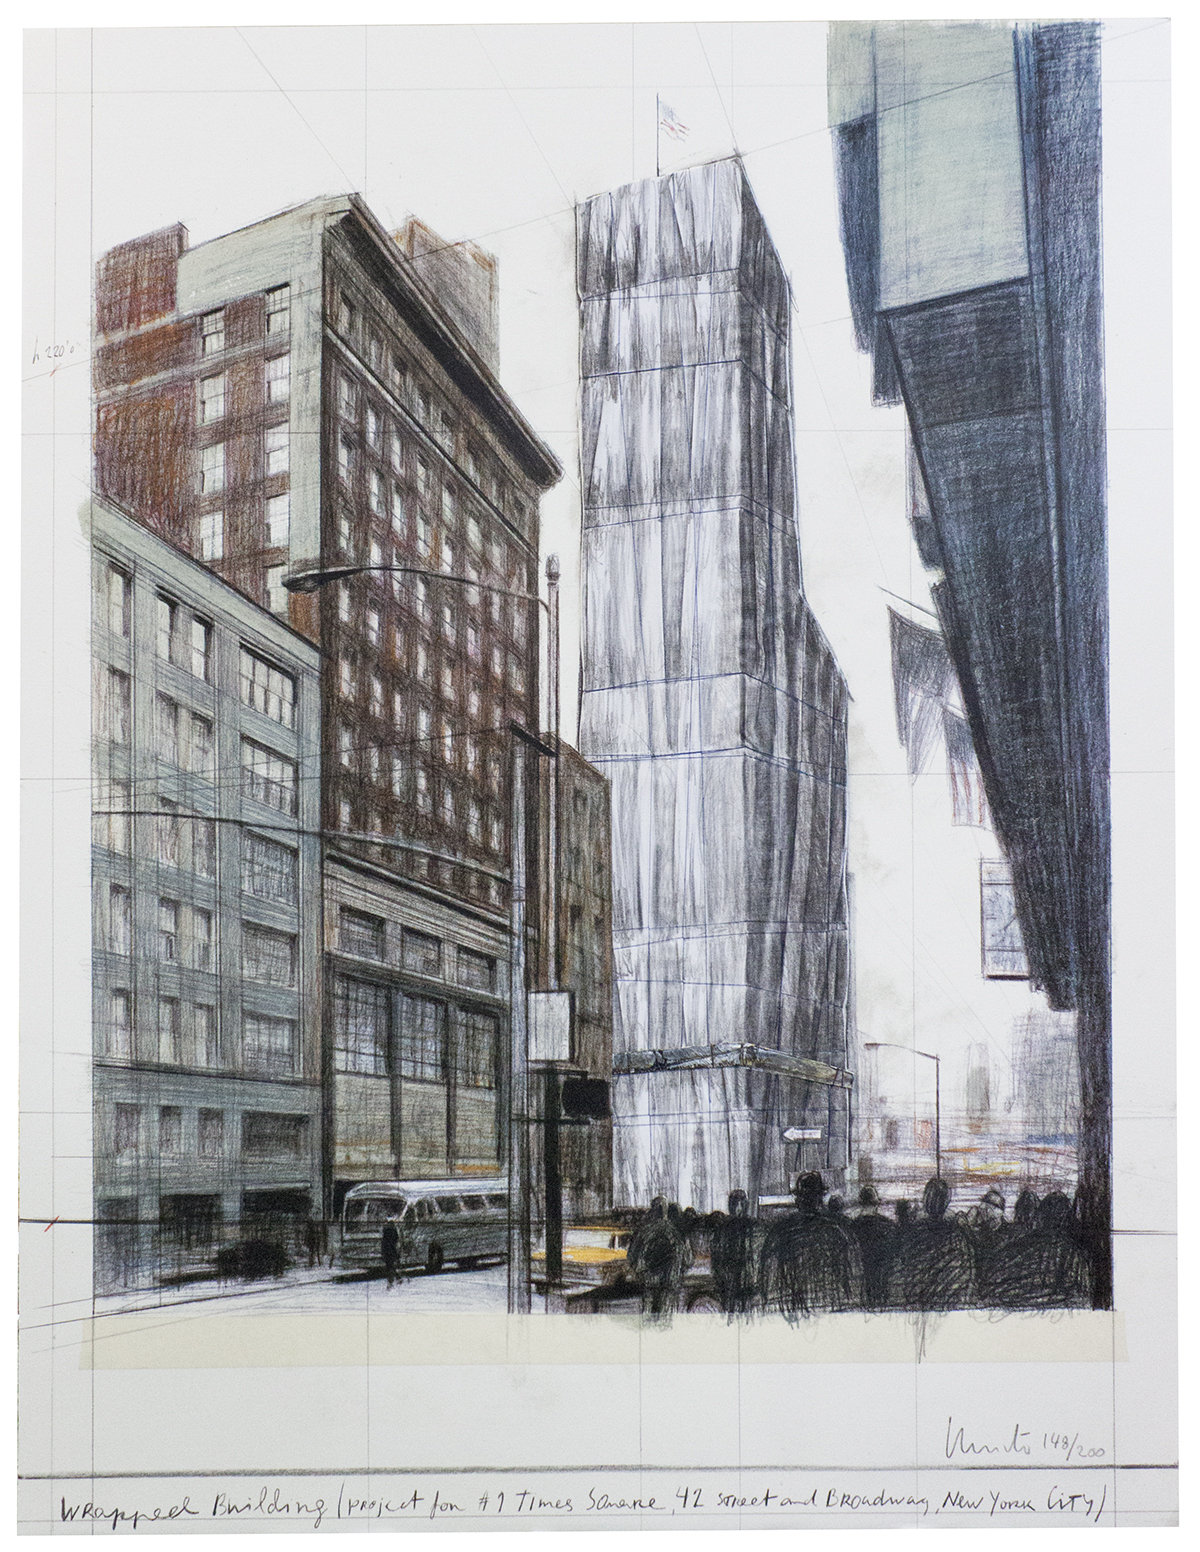 https://www.artwiseonline.com/javacheff-christo-wrapped-building-times-square-signed-cb6440-b.html